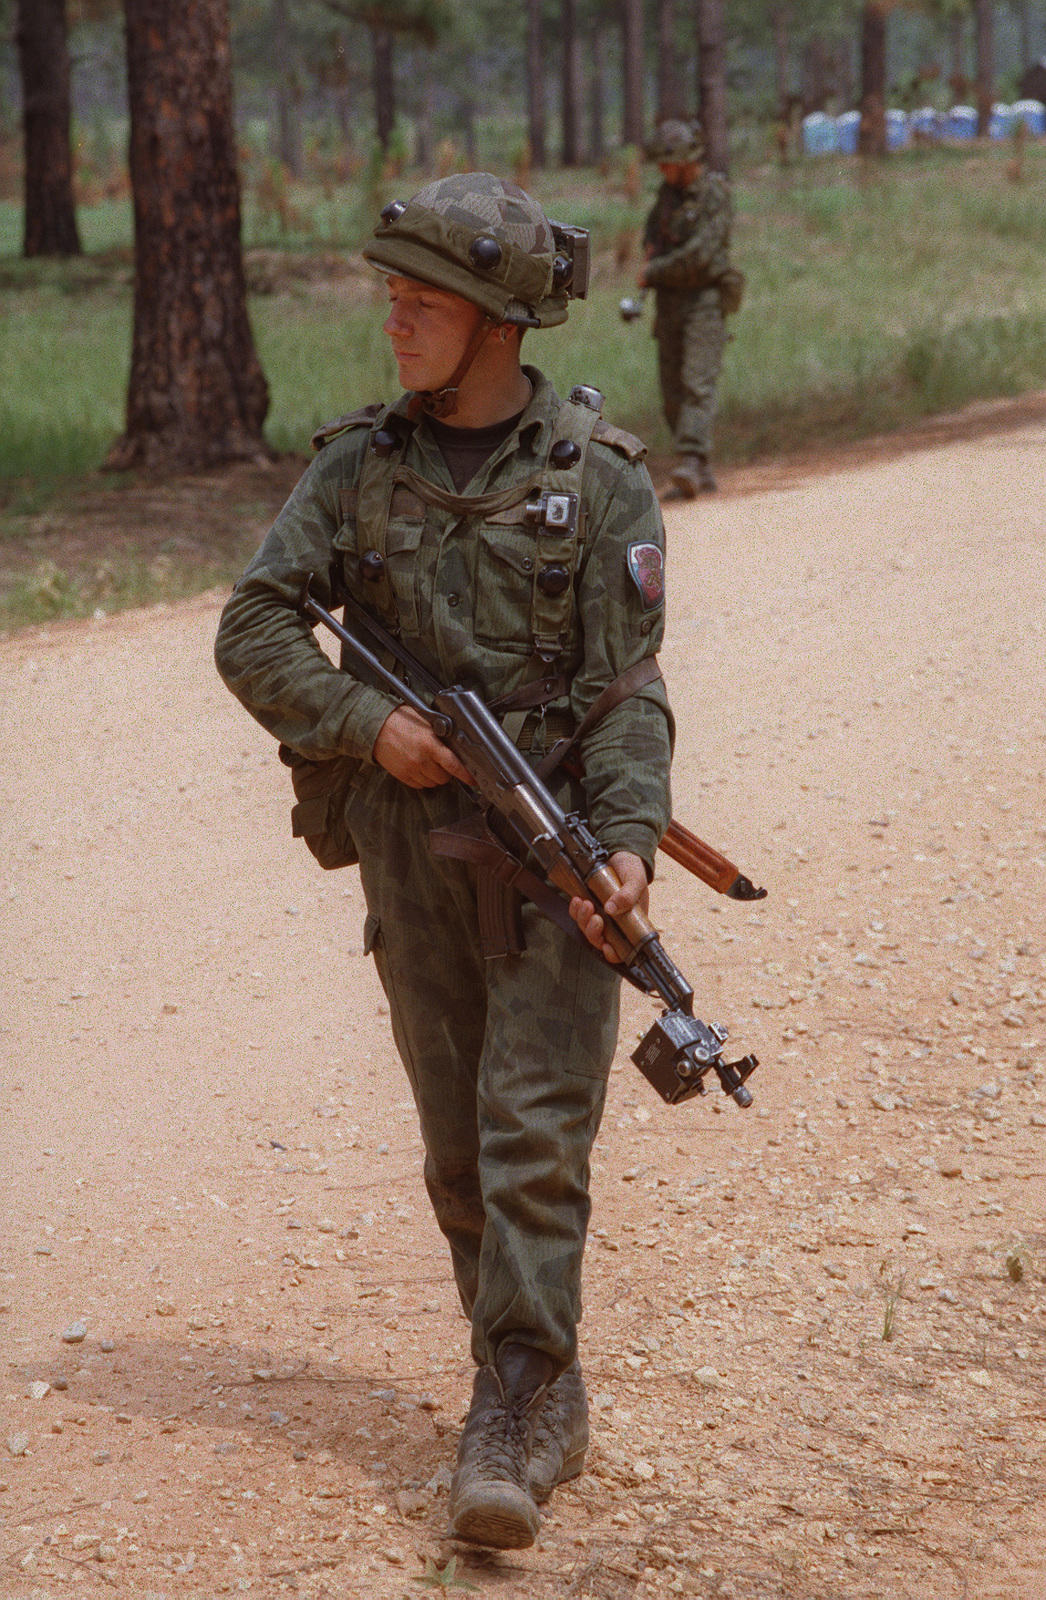 A Partnership For Peace soldier, armed with an AK-47 rifle